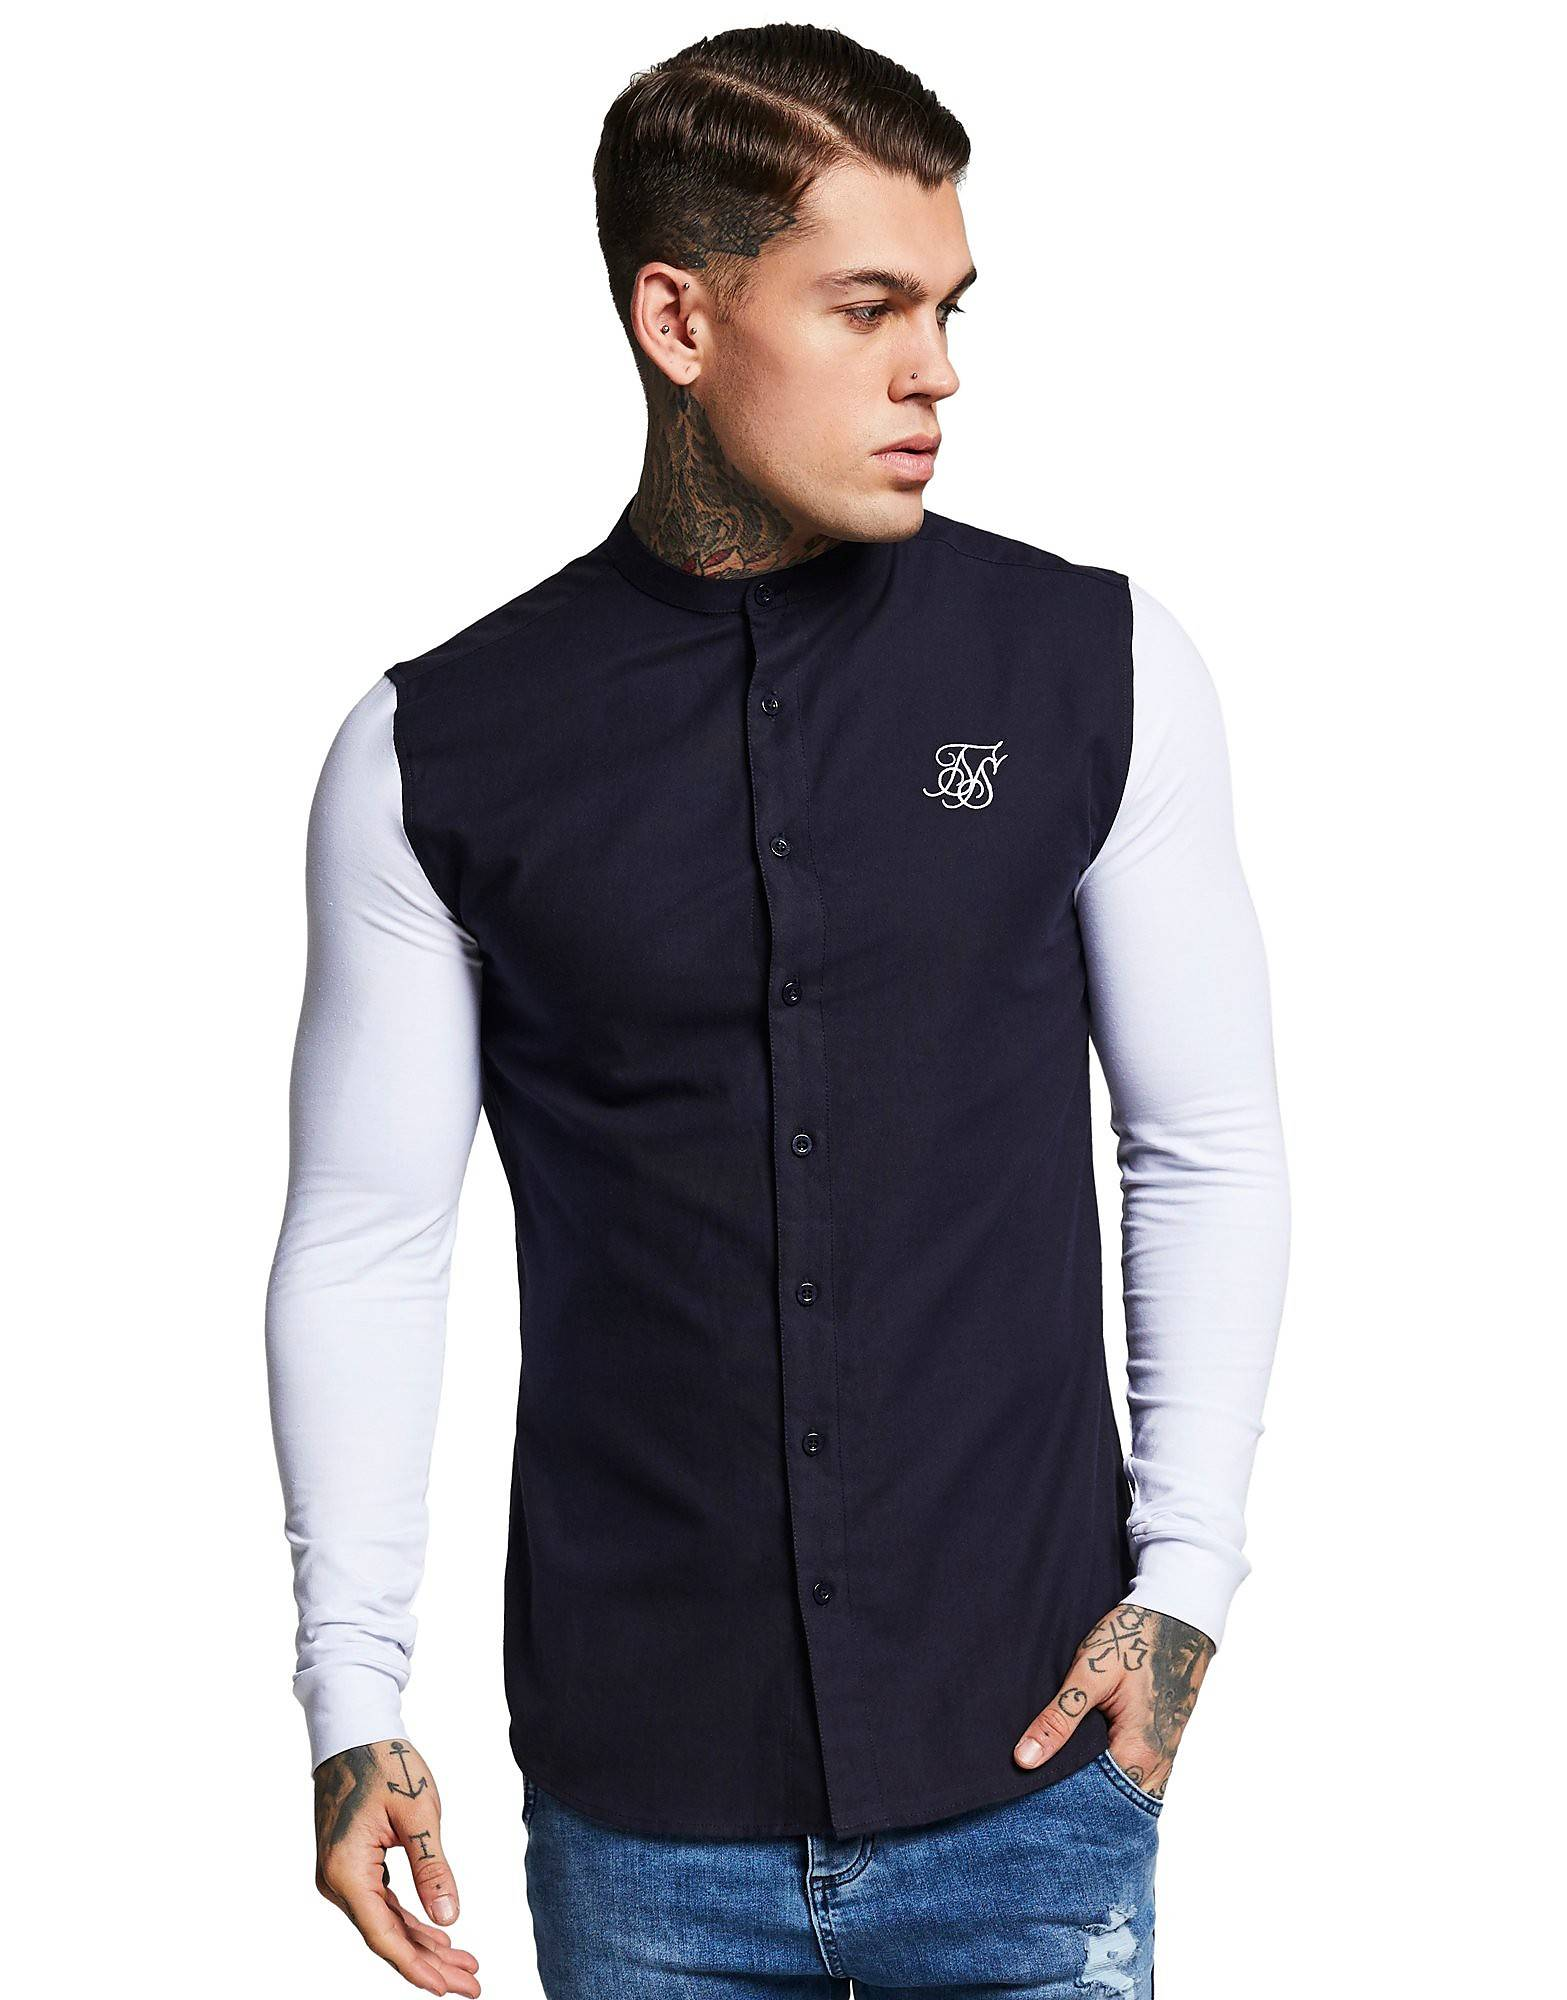 Image of SikSilk Long Sleeve Shirt - Only at JD - Mens, Laivastonsininen